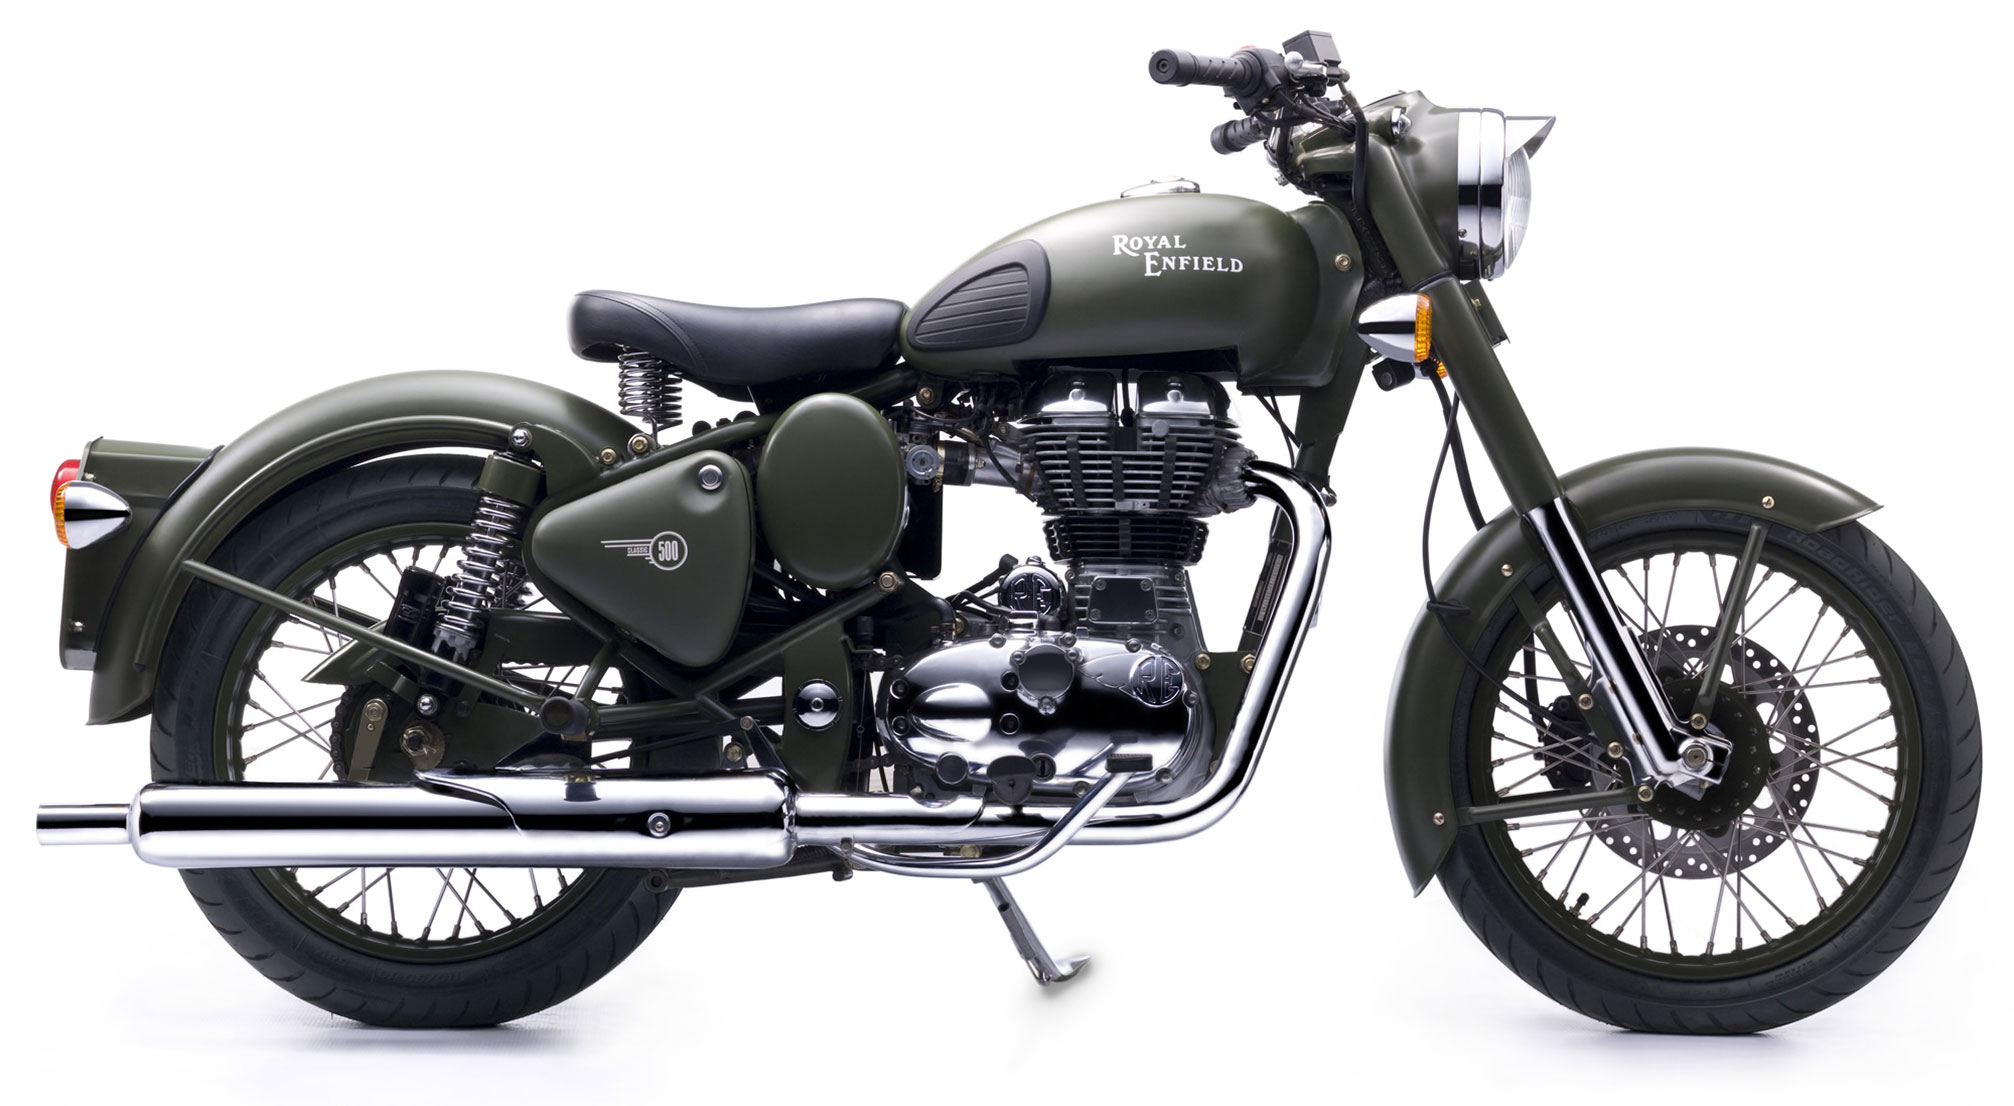 Royal enfield bullett photo - 9